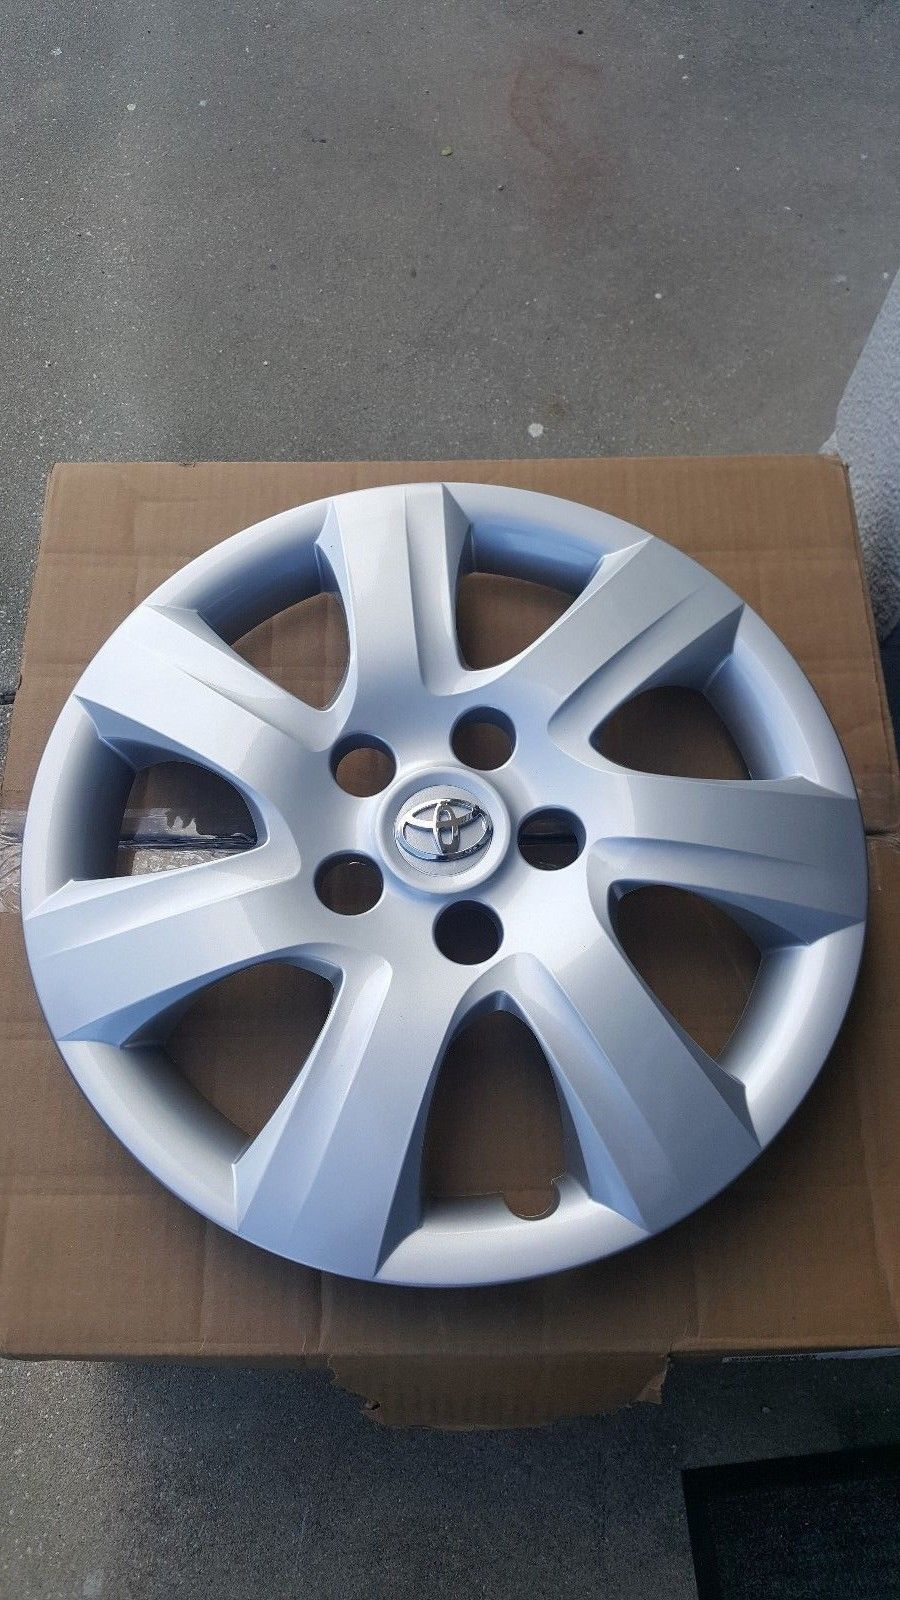 Great 16 Hubcap Wheelcover 1 Fits Toyota Camry 2010 11 Replaces 4260206050 H 61155 2018 2019